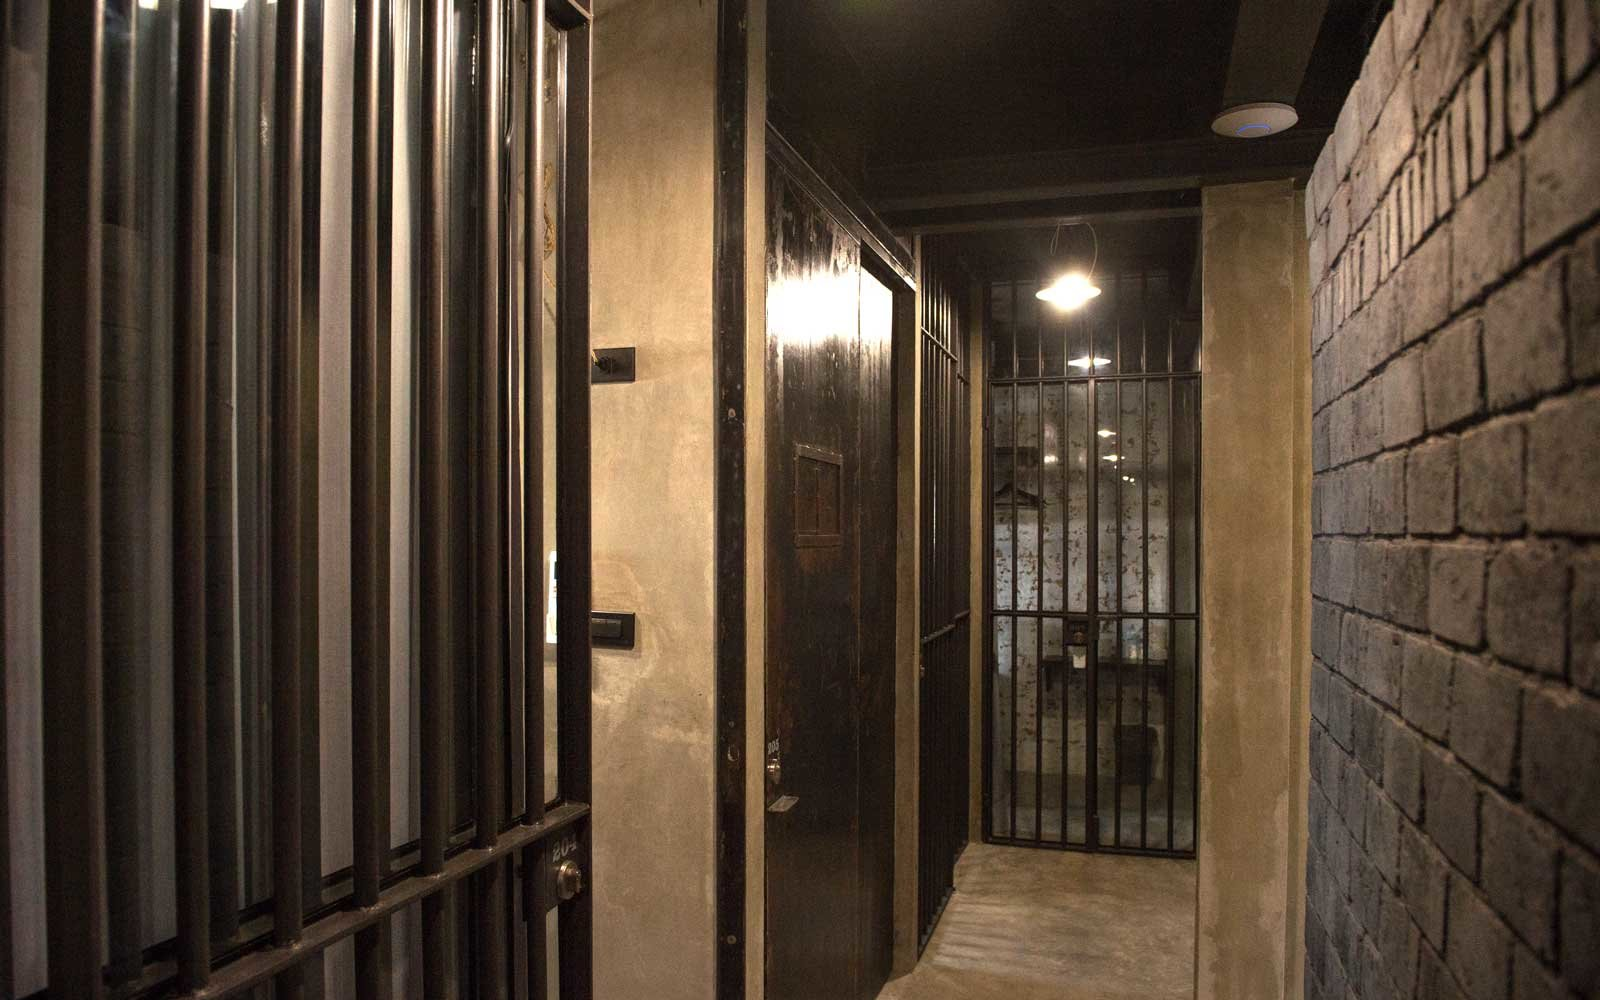 Sook Station Is a Prison-themed Hotel in Bangkok | Travel + Leisure